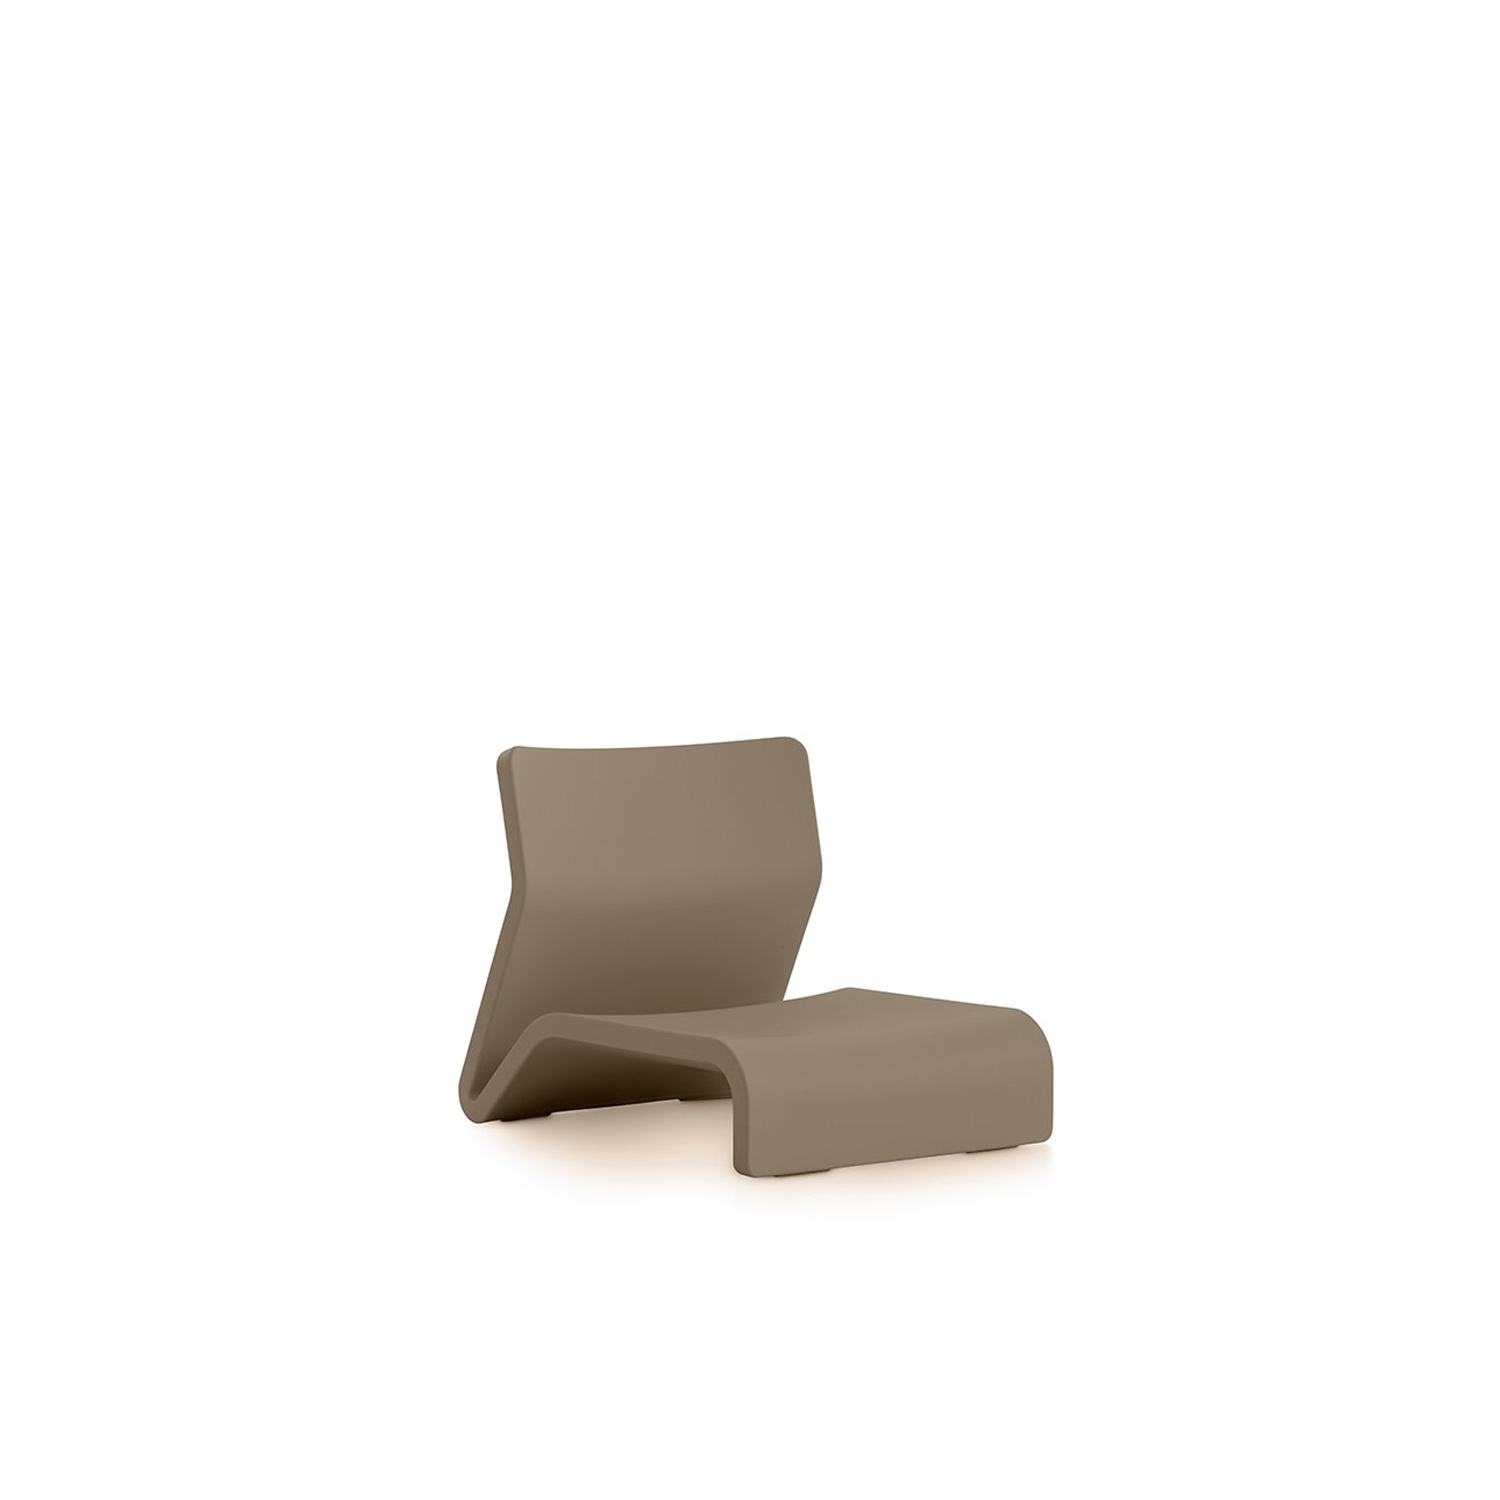 Clip Lounge Chair - <p>This is the armchair in our Clip collection, one of Diabla's most ingenious collections, as it allows you to create a whole range of different furniture with just two elements. For example, by adding the side table to this outdoor armchair as a footrest, it becomes a lounger. And if you alternate several of these two pieces in a row, you'll get a sofa with however many seats you want. Behind its appearance of spontaneous strokes is a very carefully studied design.</p> <p>Due to its sinuous form and low height, made from 100% recyclable polyethylene, the Clip outdoor armchair is an especially comfortable seat that creates a casual atmosphere that's perfect for laid-back, informal settings. In combination with its side table it can be used to improvise not only different furniture but also multiple scenarios depending on your needs at each moment. What you do with it is all down to your creativity.</p>    Matter of Stuff